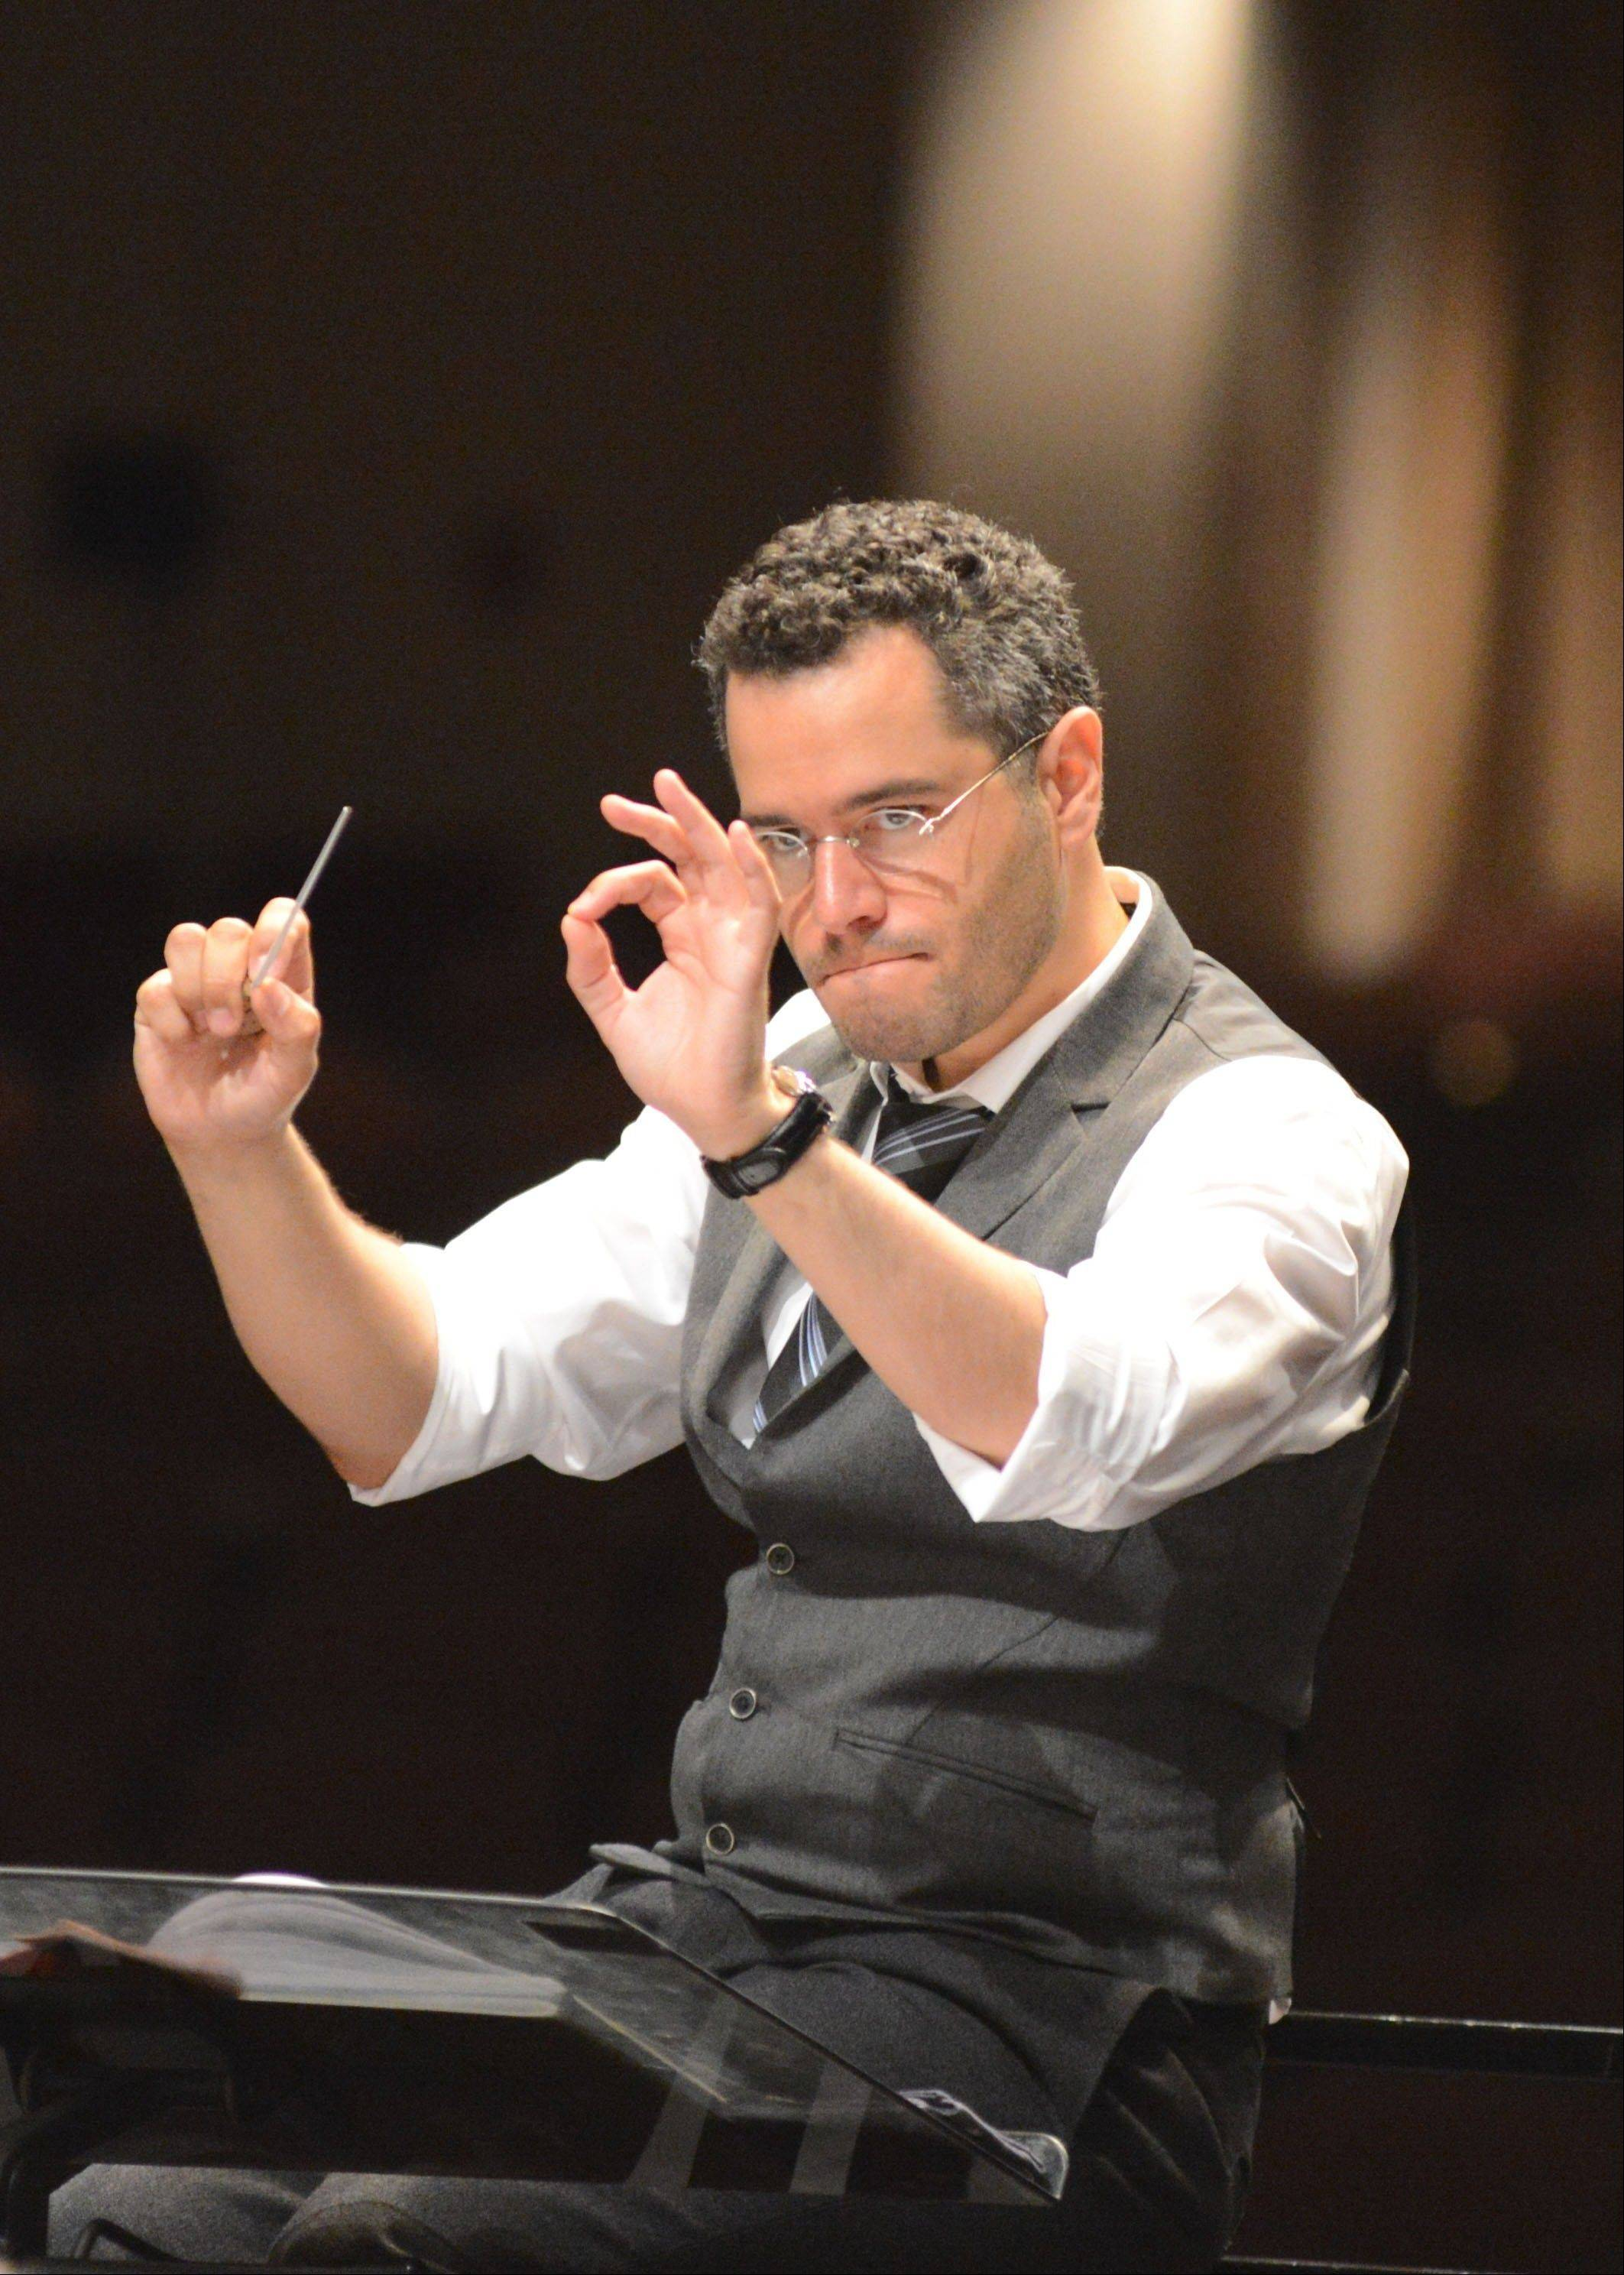 Andrew Grams conducts the Elgin Symphony Orchestra this weekend in his debut concerts as music director.